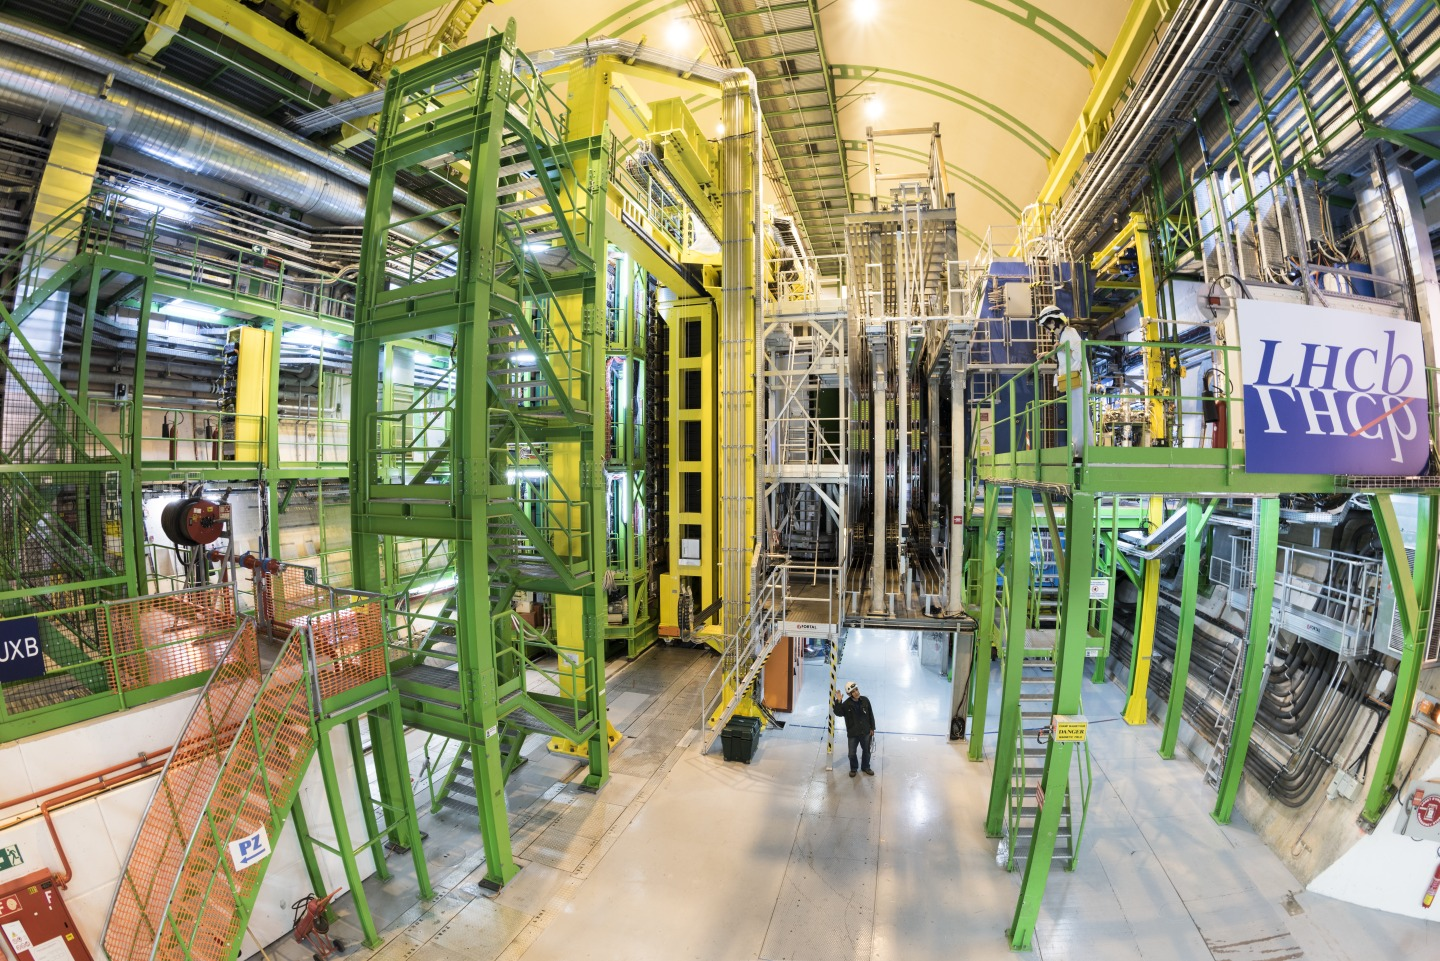 LHCb experiment cavern at LHC- IP 8